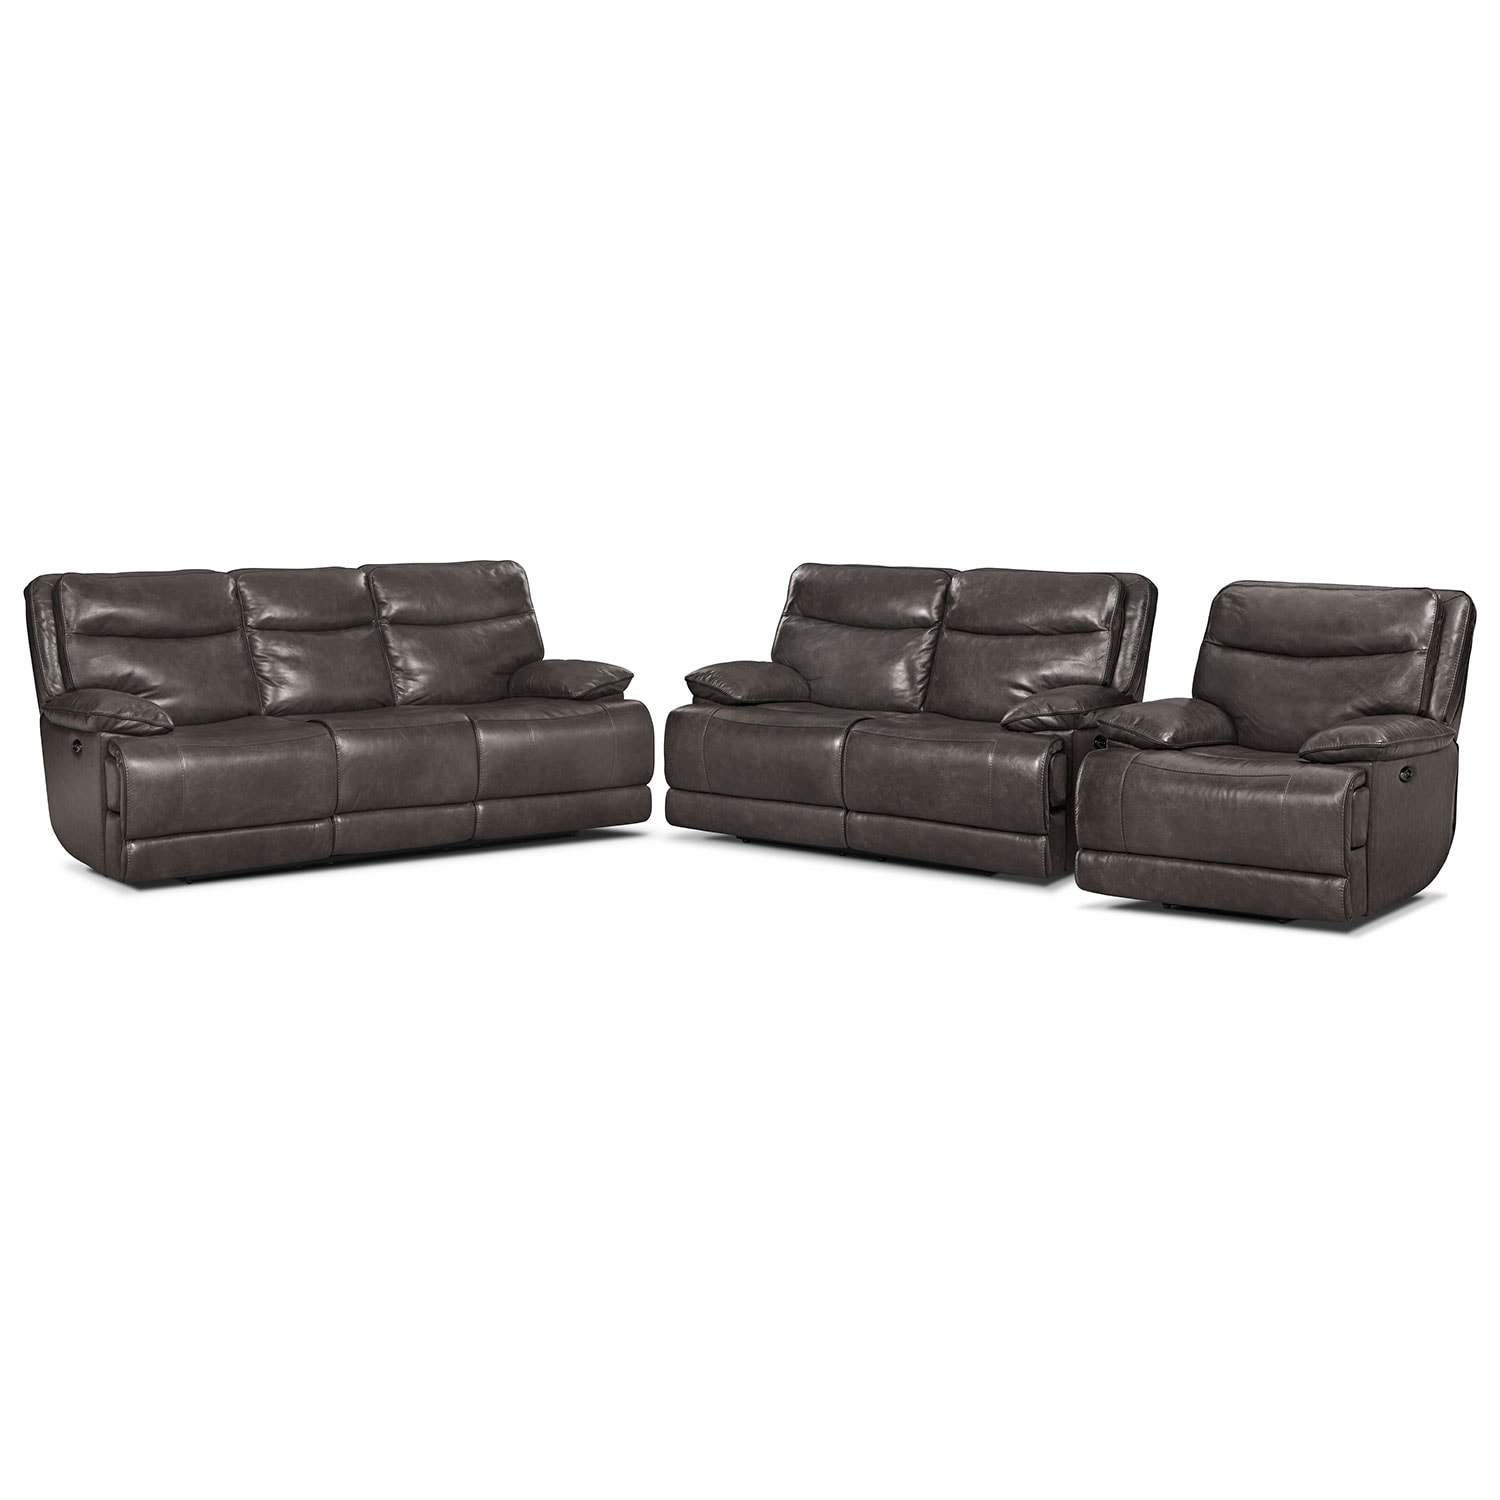 [Monaco 3 Pc. Power Reclining Living Room]